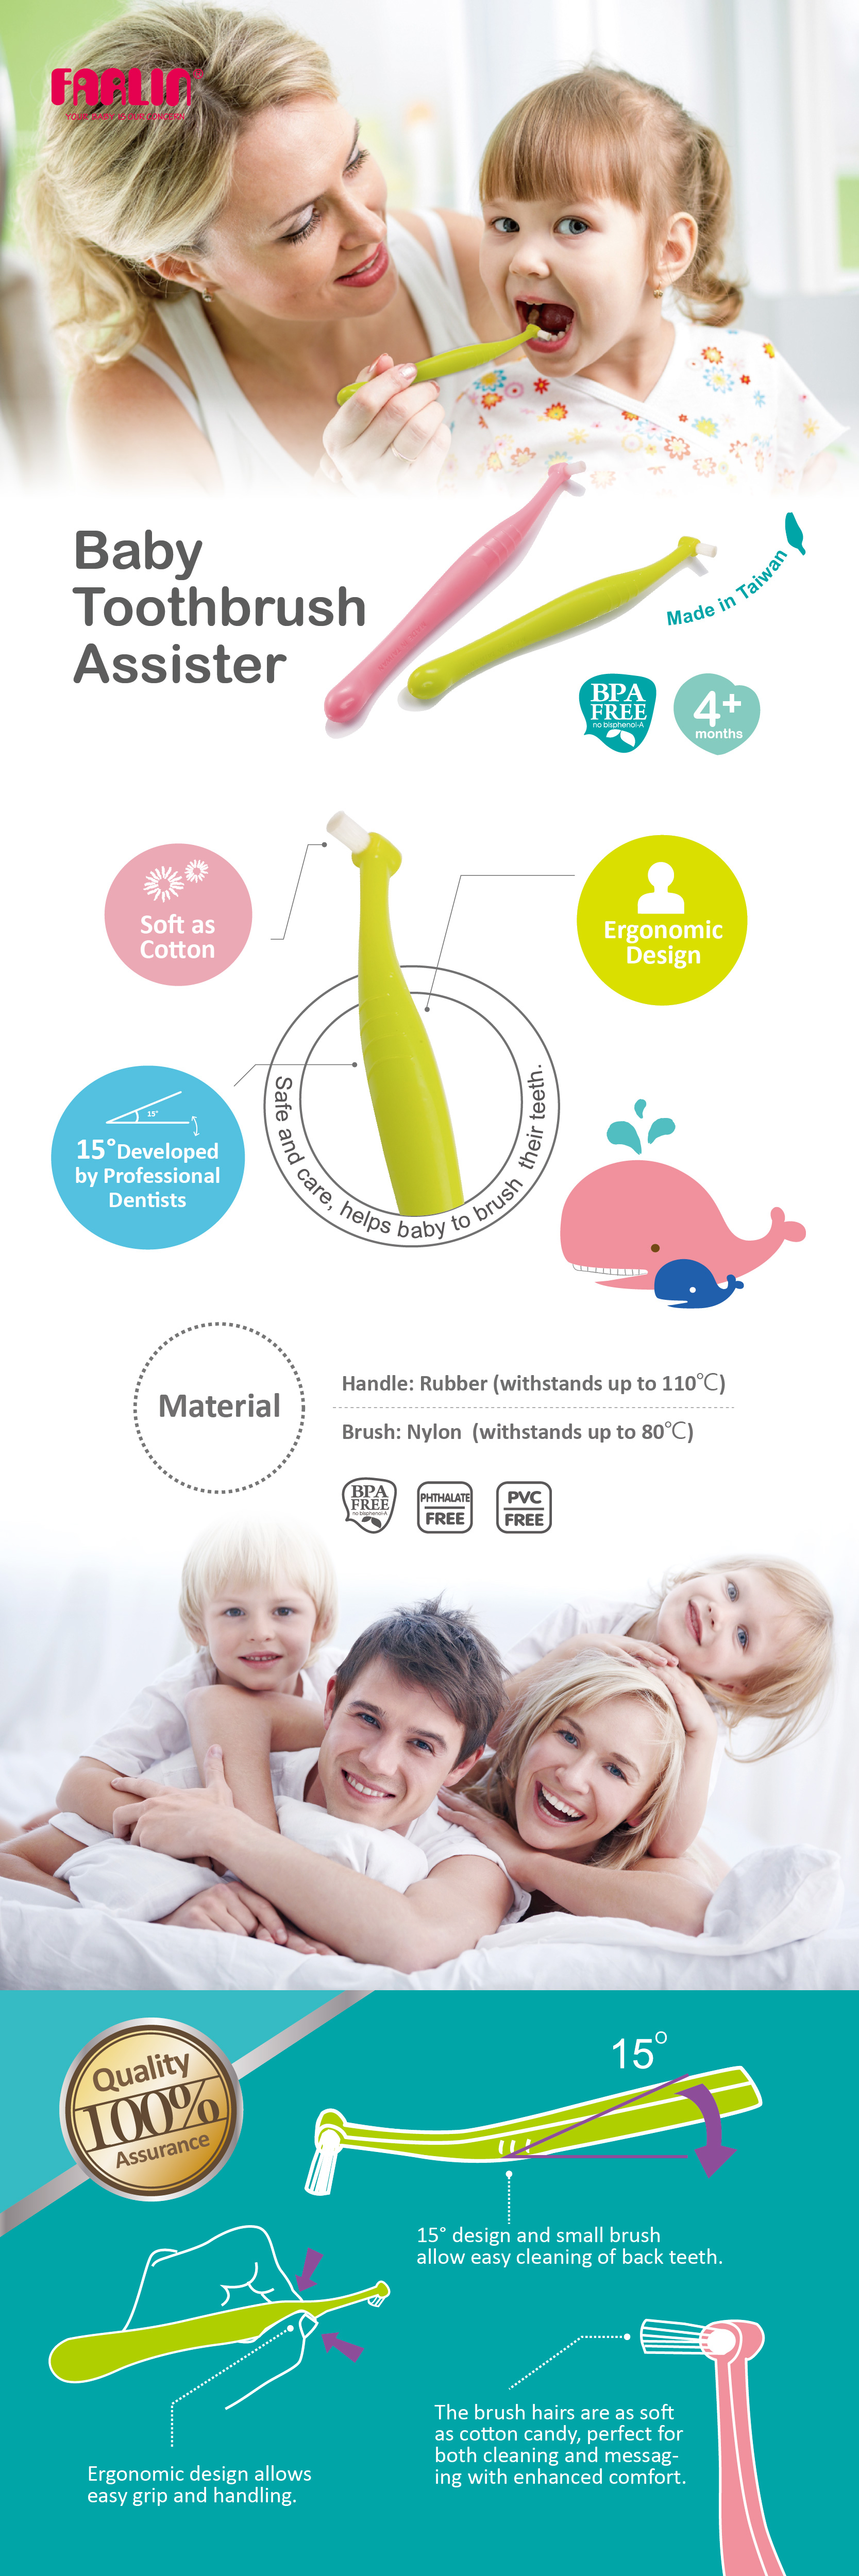 EDM-BB-40011-Baby Toothbrush Assister-01